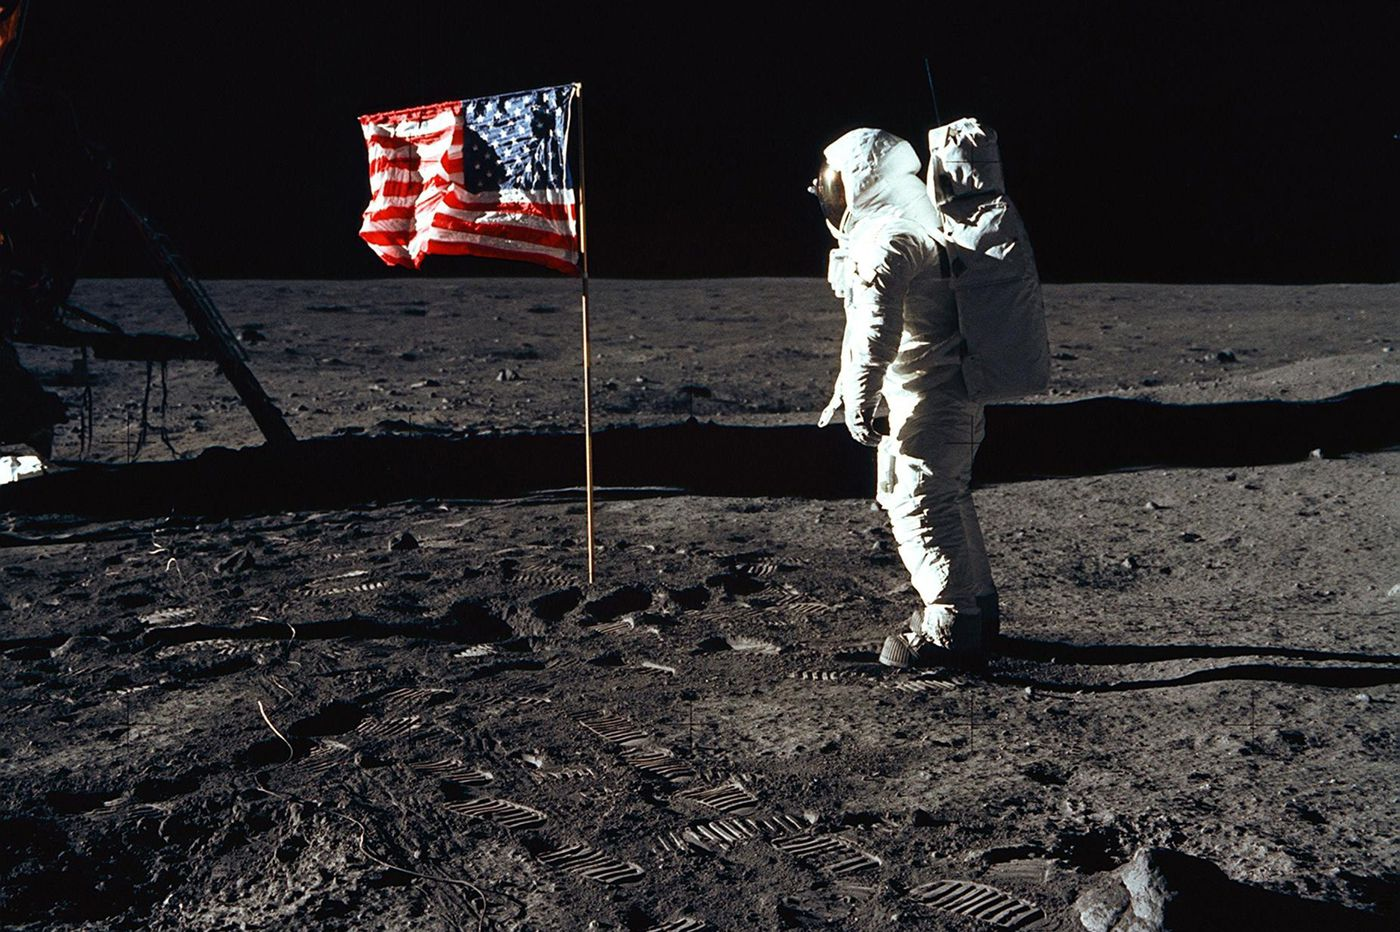 Buzz Aldrin plants the U.S. flag on the surface of the moon, July 1969. (Photo by Neil Armstrong)